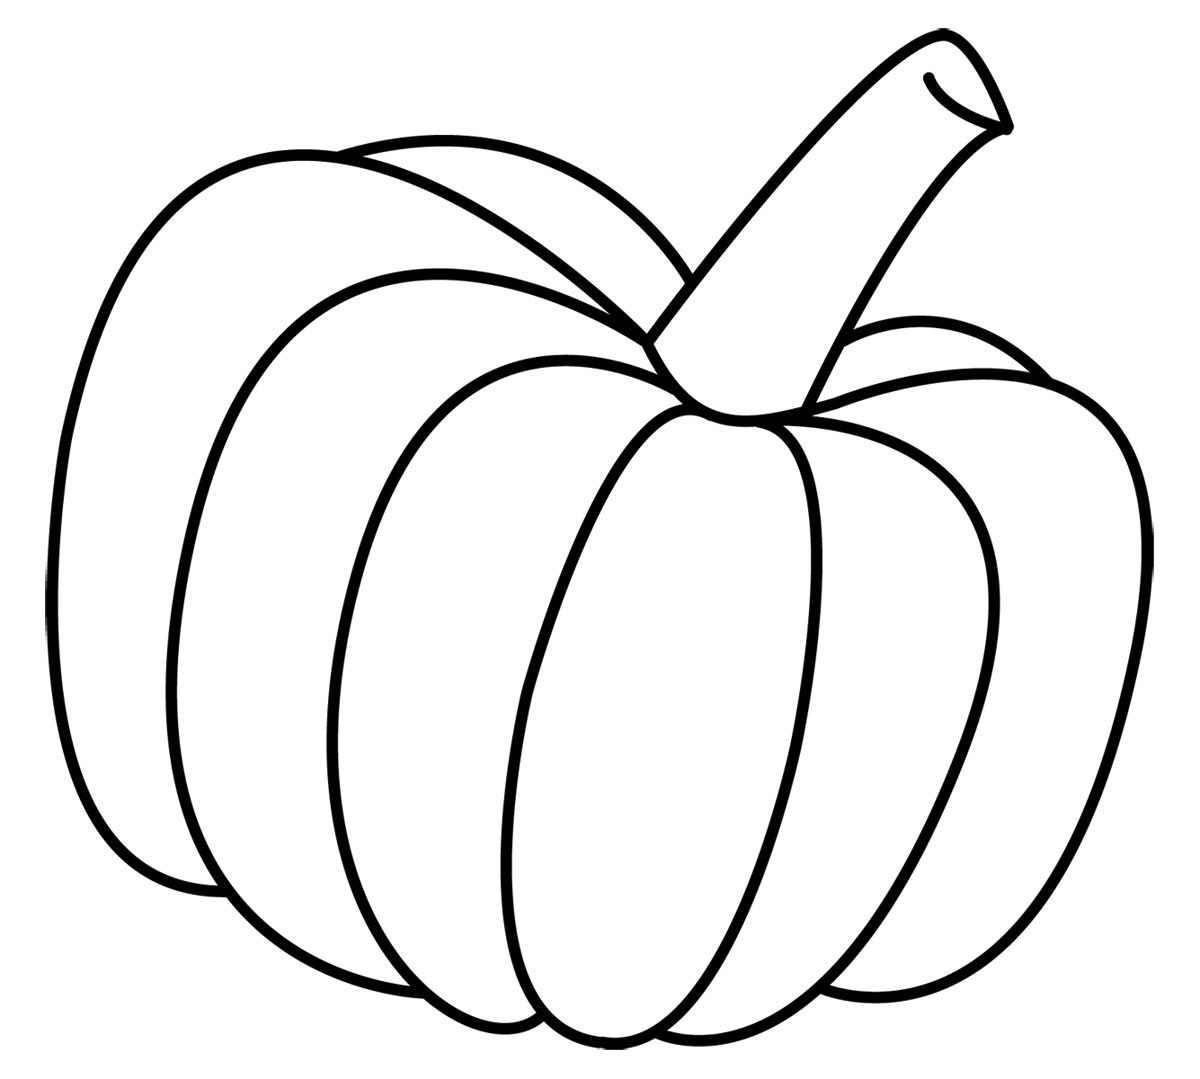 Free Printable Pumpkin Coloring Pages For Kids | Stuff to ... |Pumpkin Clipart Black And White Carson